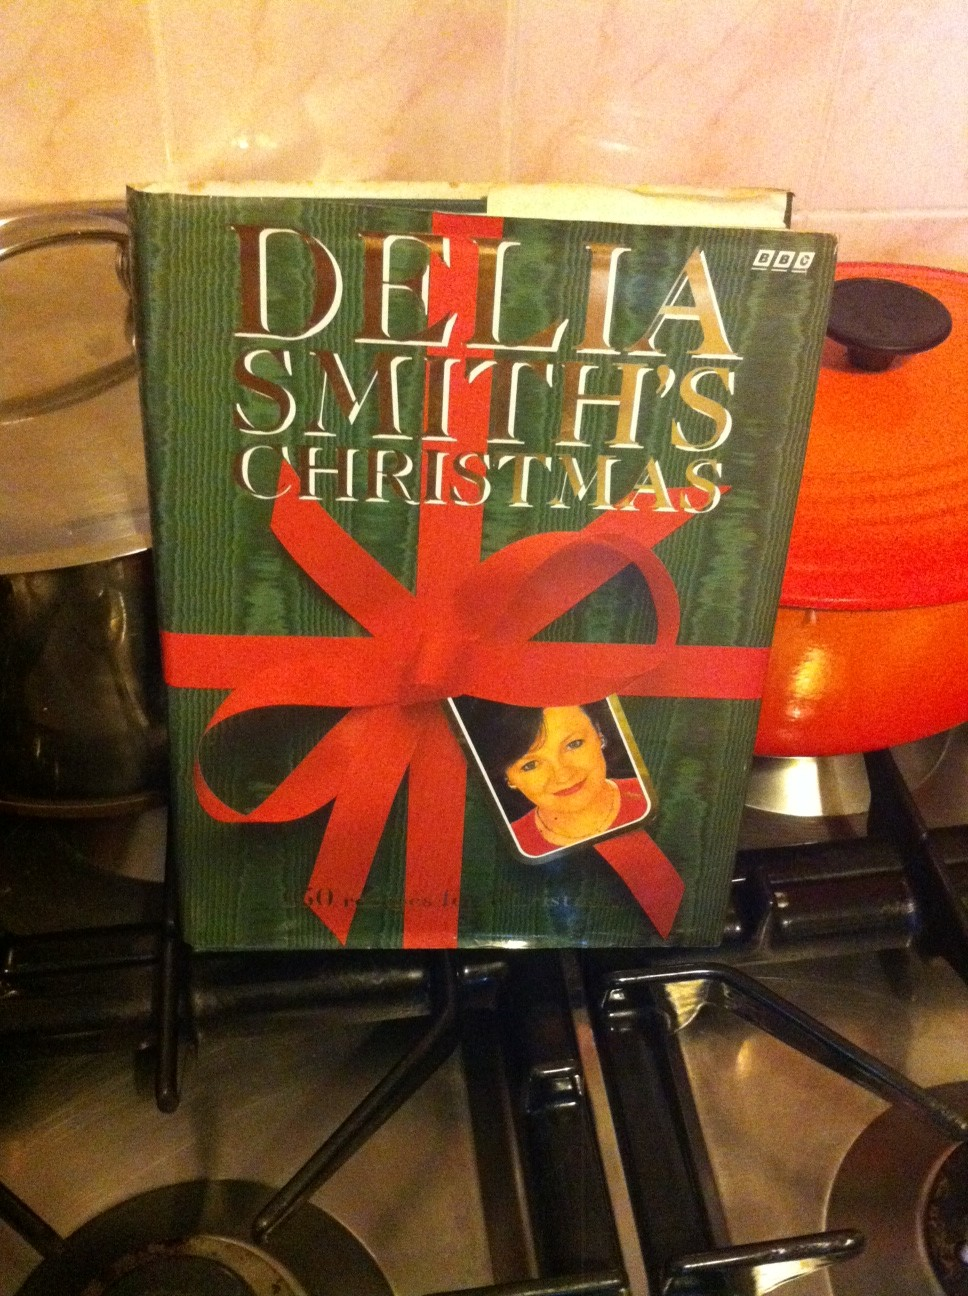 CF Christmas: Delia Smith Christmas recipes